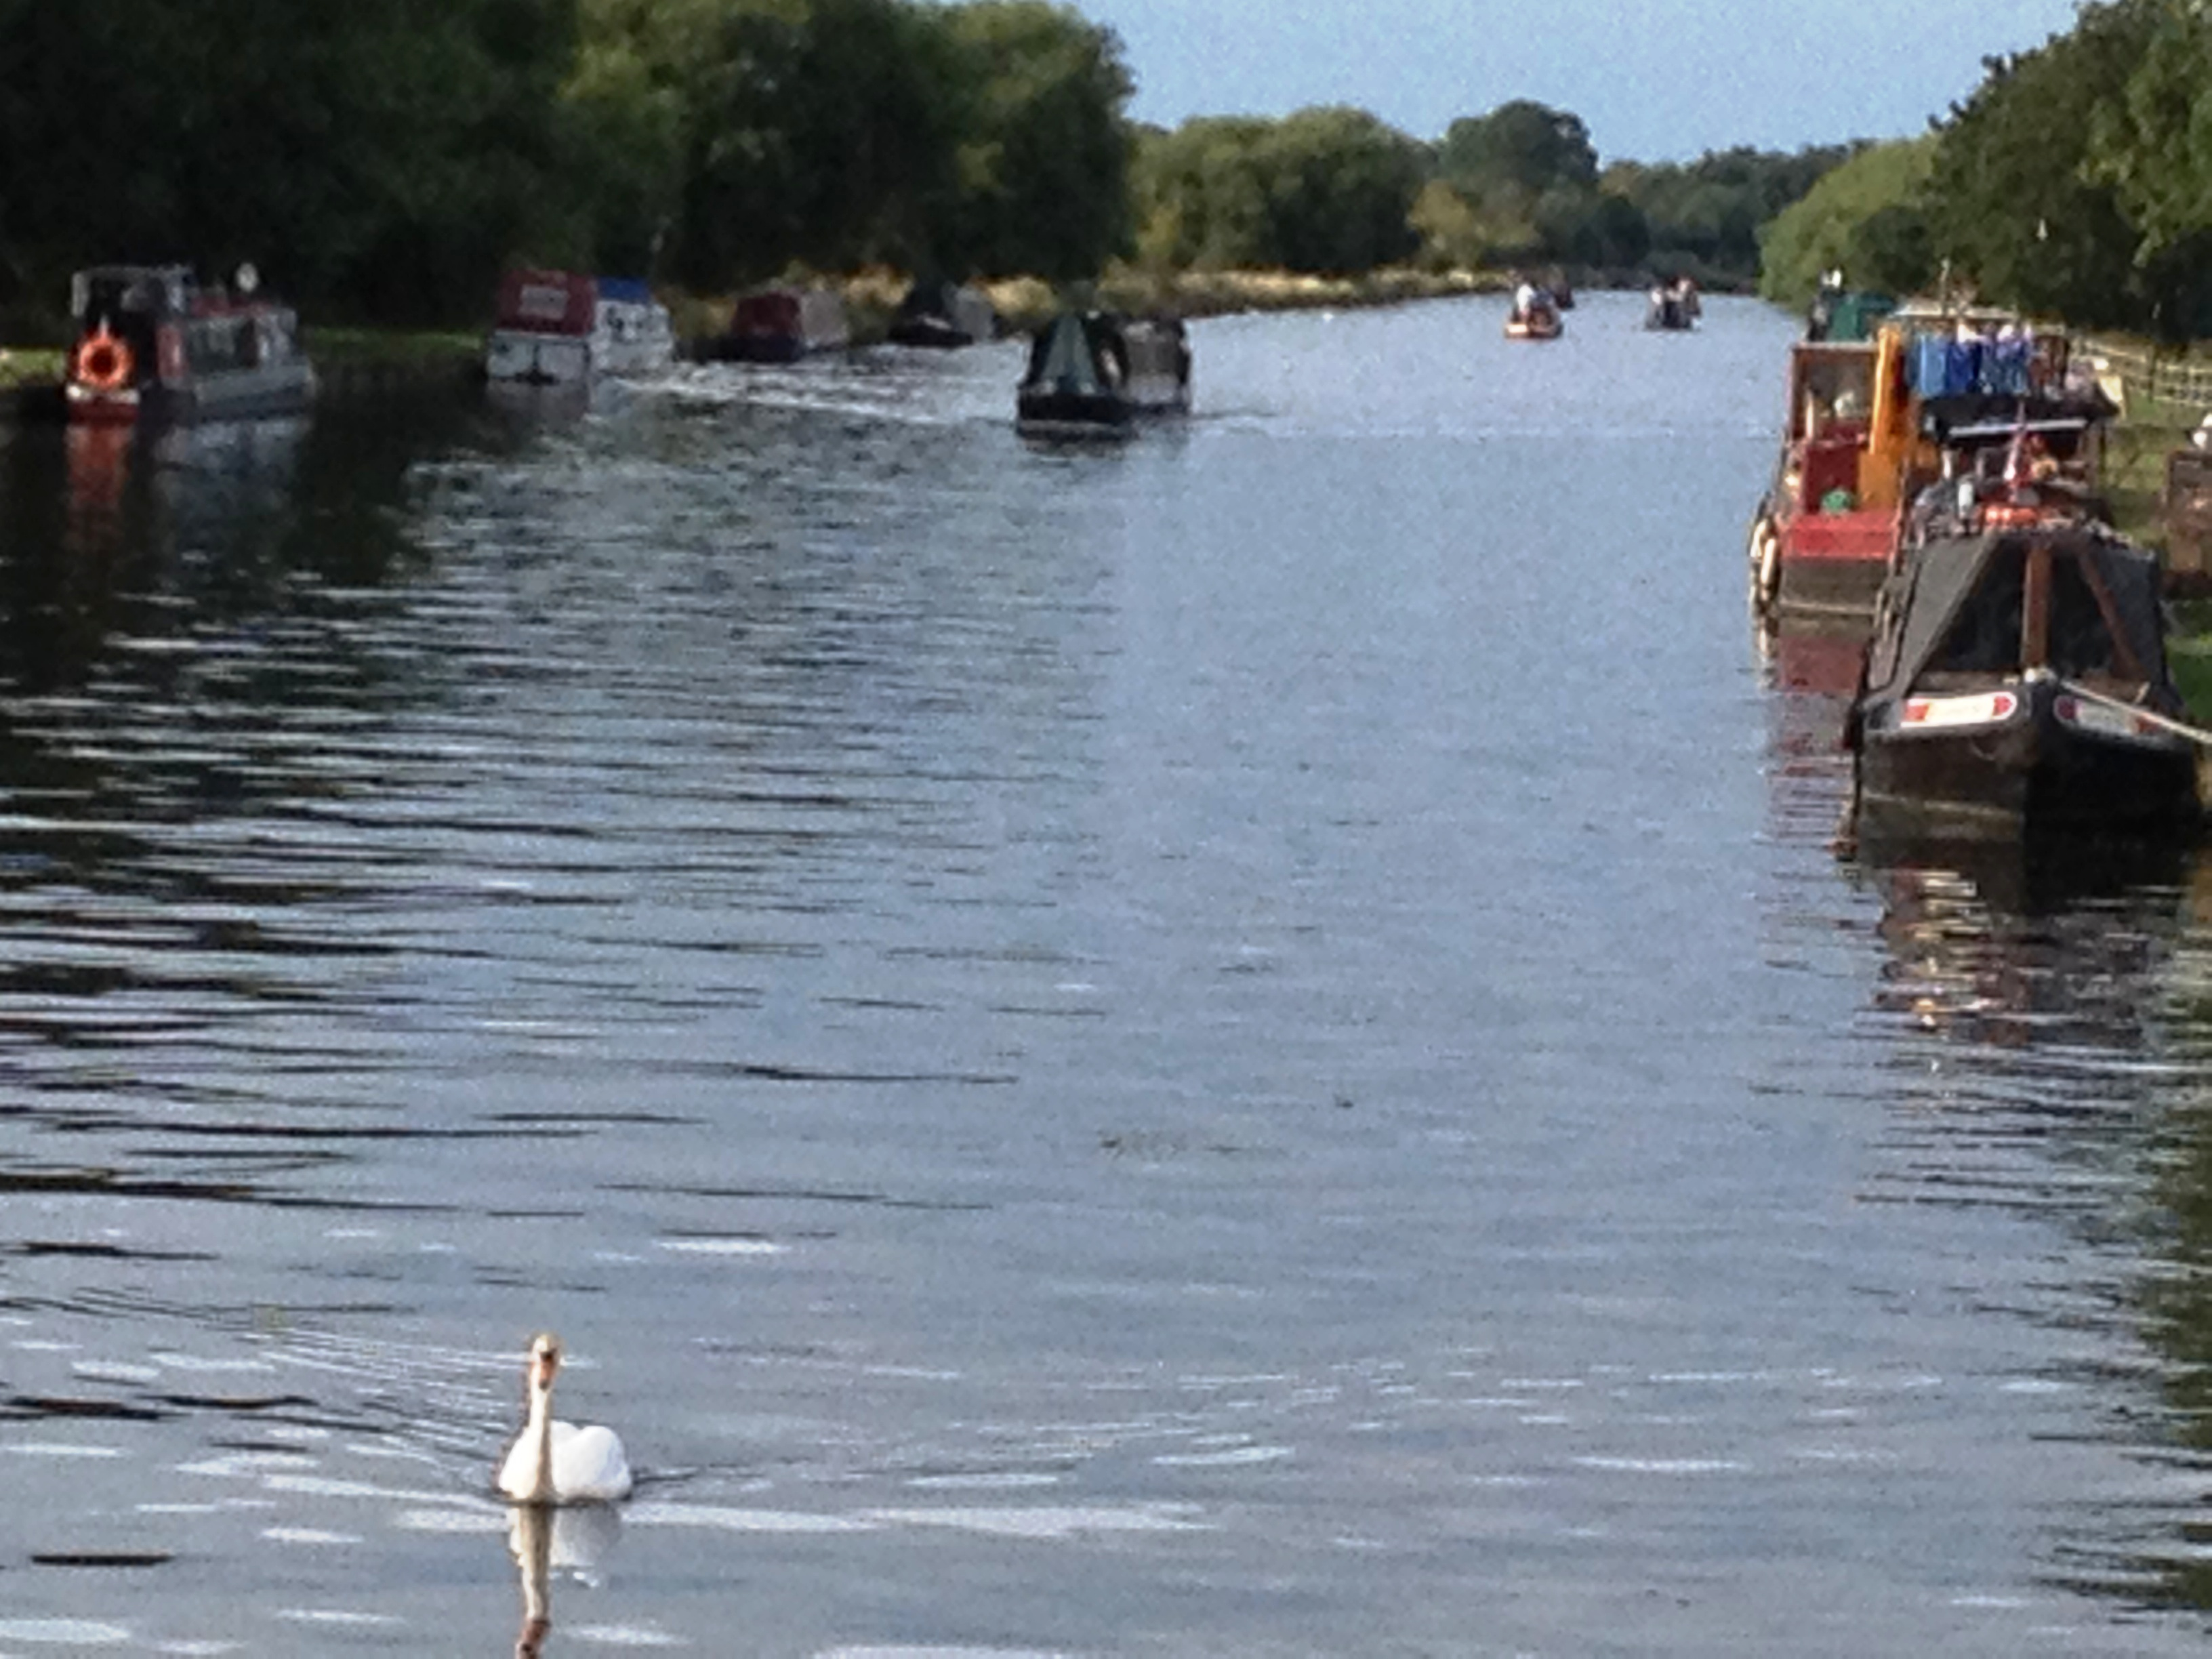 Gloucester to Sharpness Canal in Frampton (2 miles away)